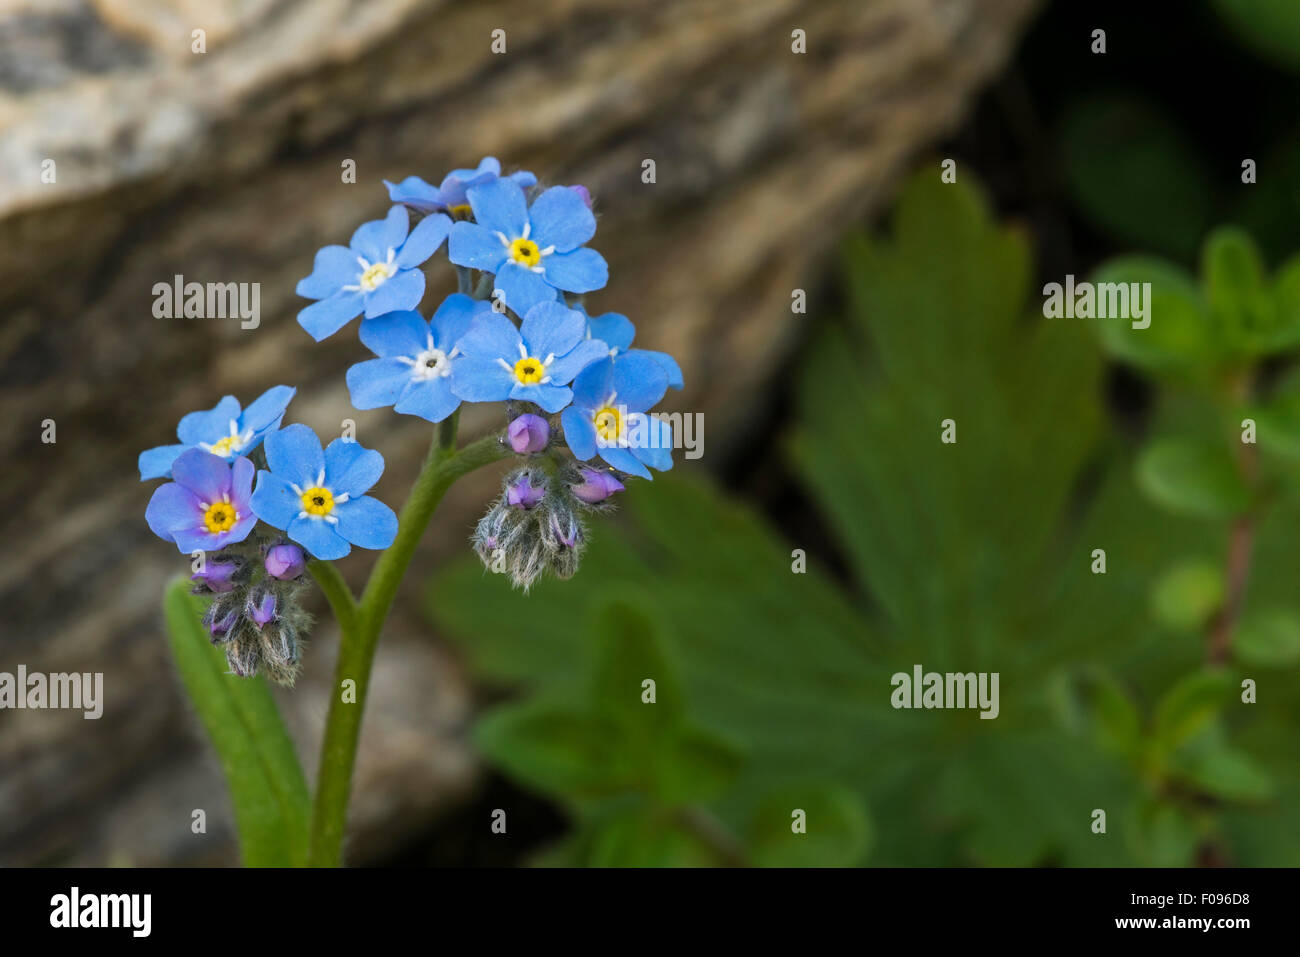 Alpine Forget-me-not (Myosotis alpestris) in flower in the Alps Stock Photo